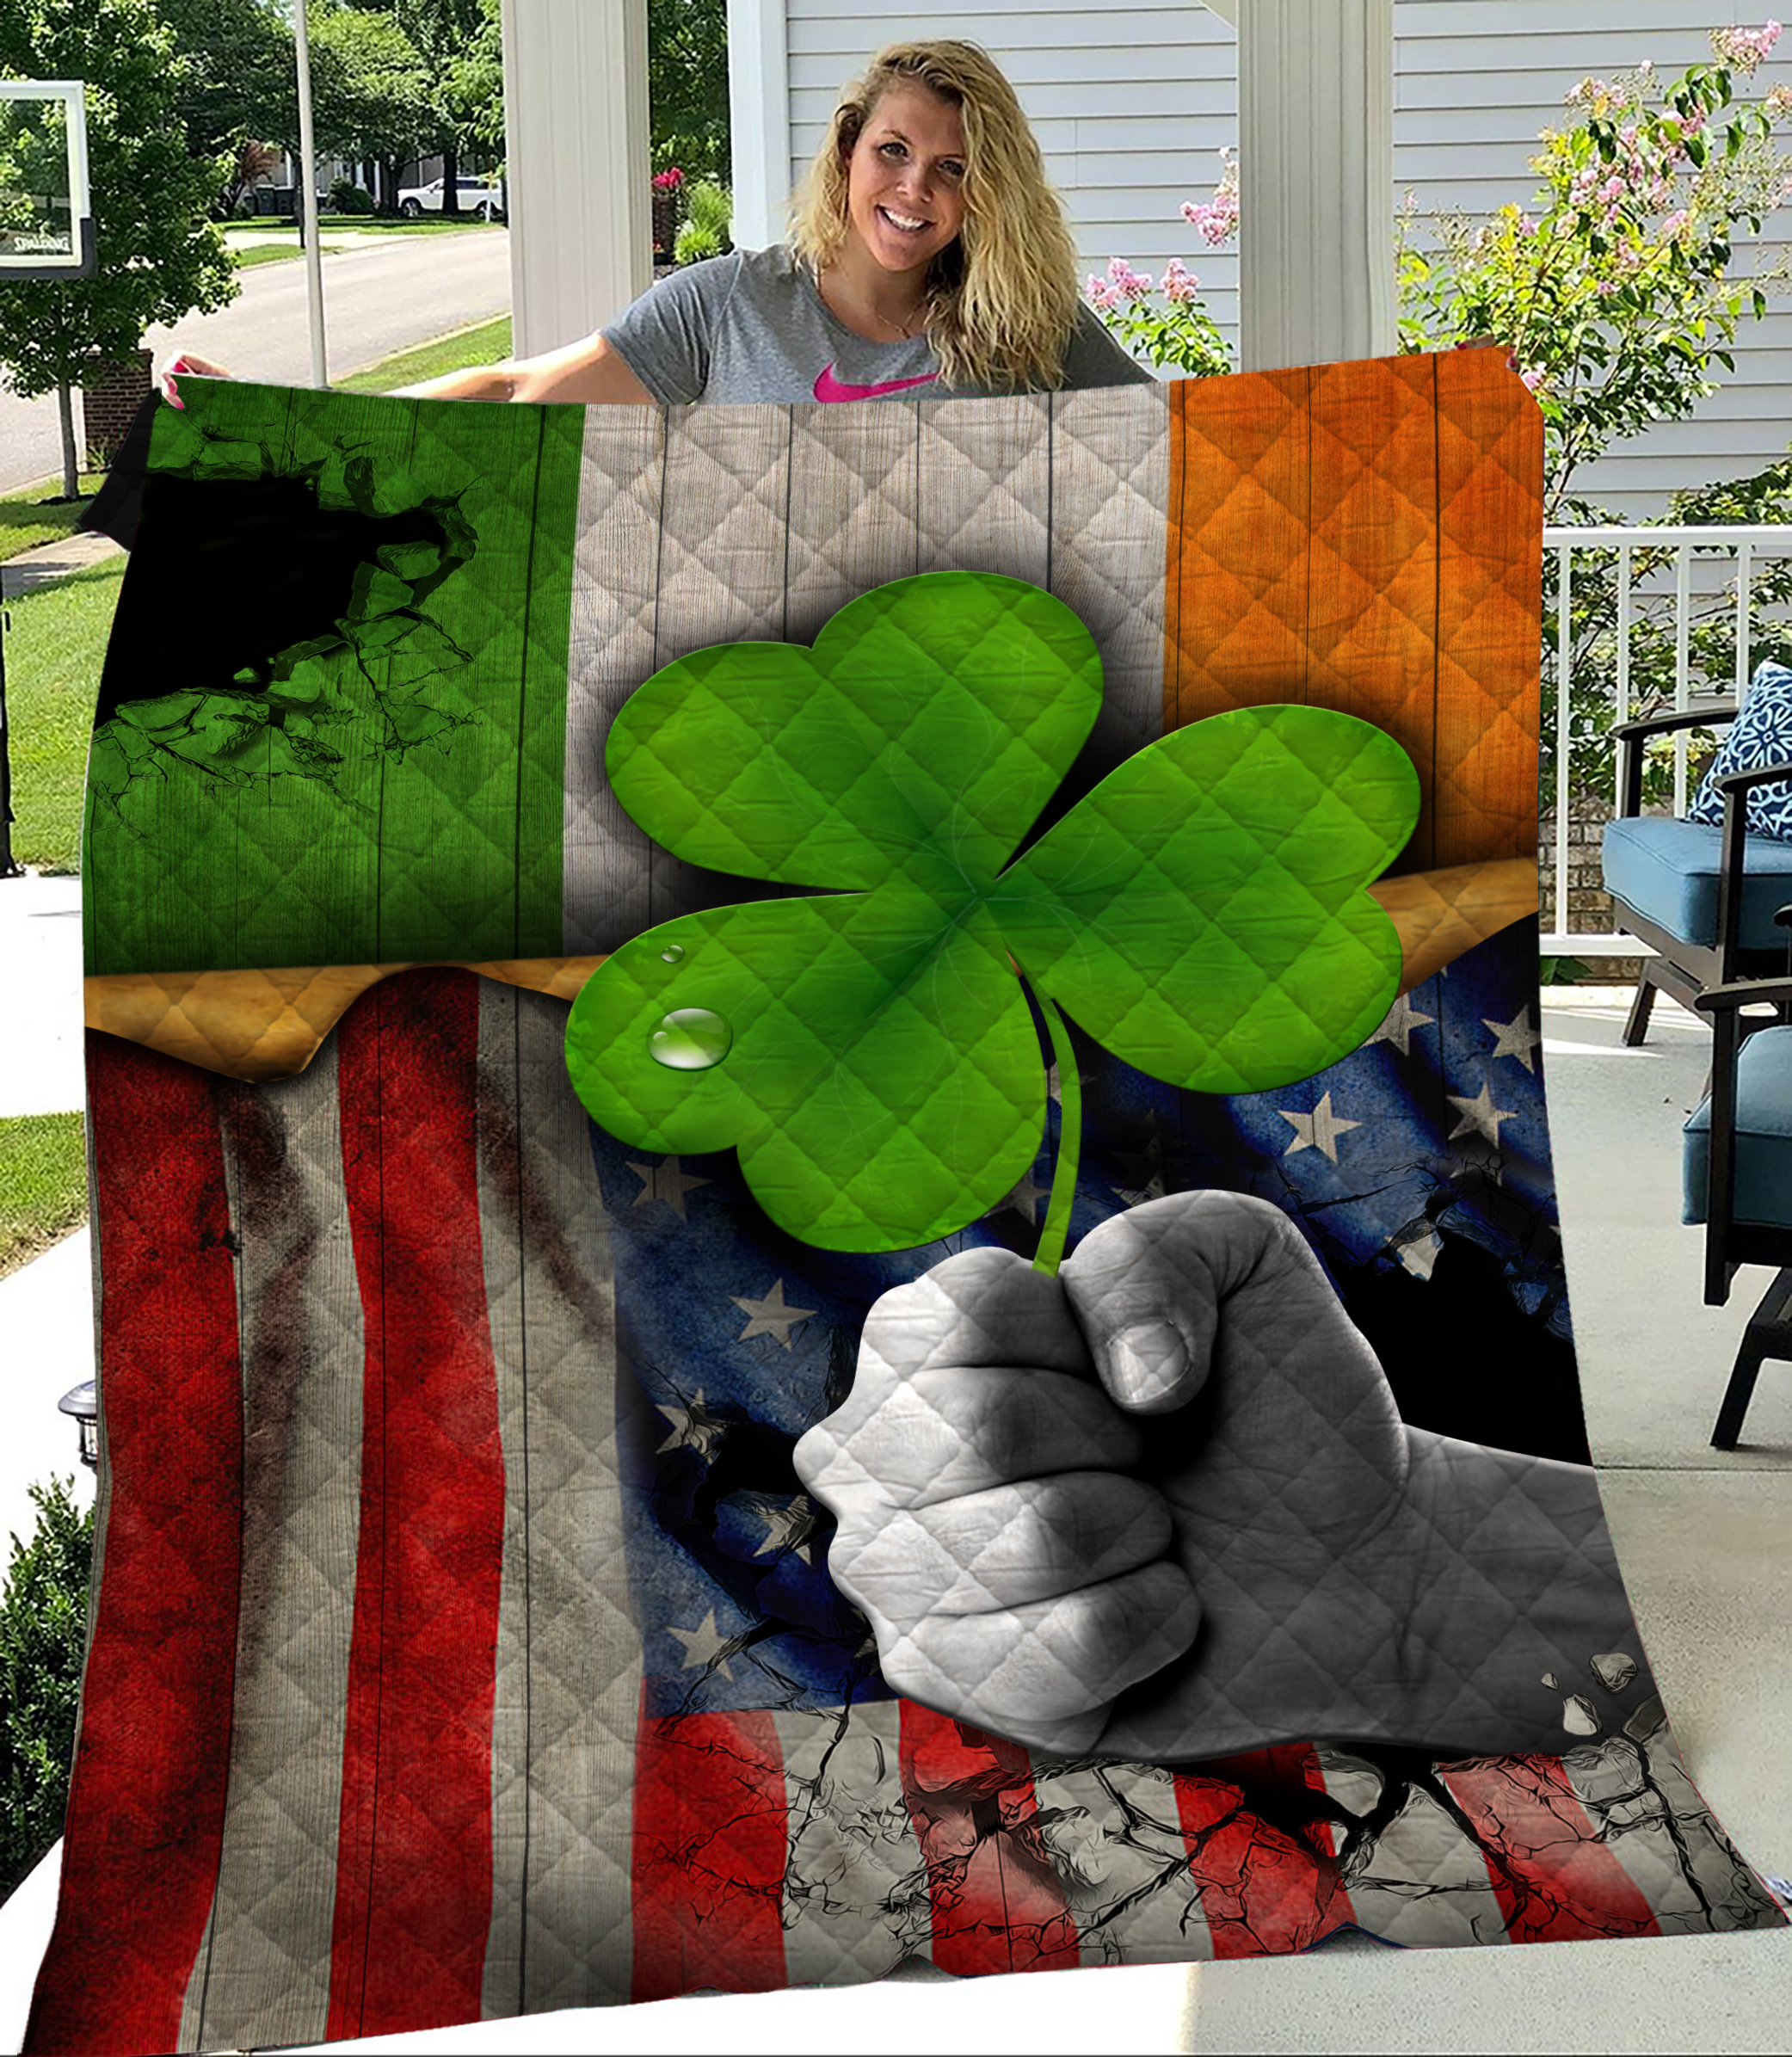 Personalized Lovely Quilt Throw Blanket St Patrick's Day Shamrock It'S Not A Party Until The Irish Show Up Pattern 2 Lightweight Super Soft Cozy For Decorative Couch Sofa Bed